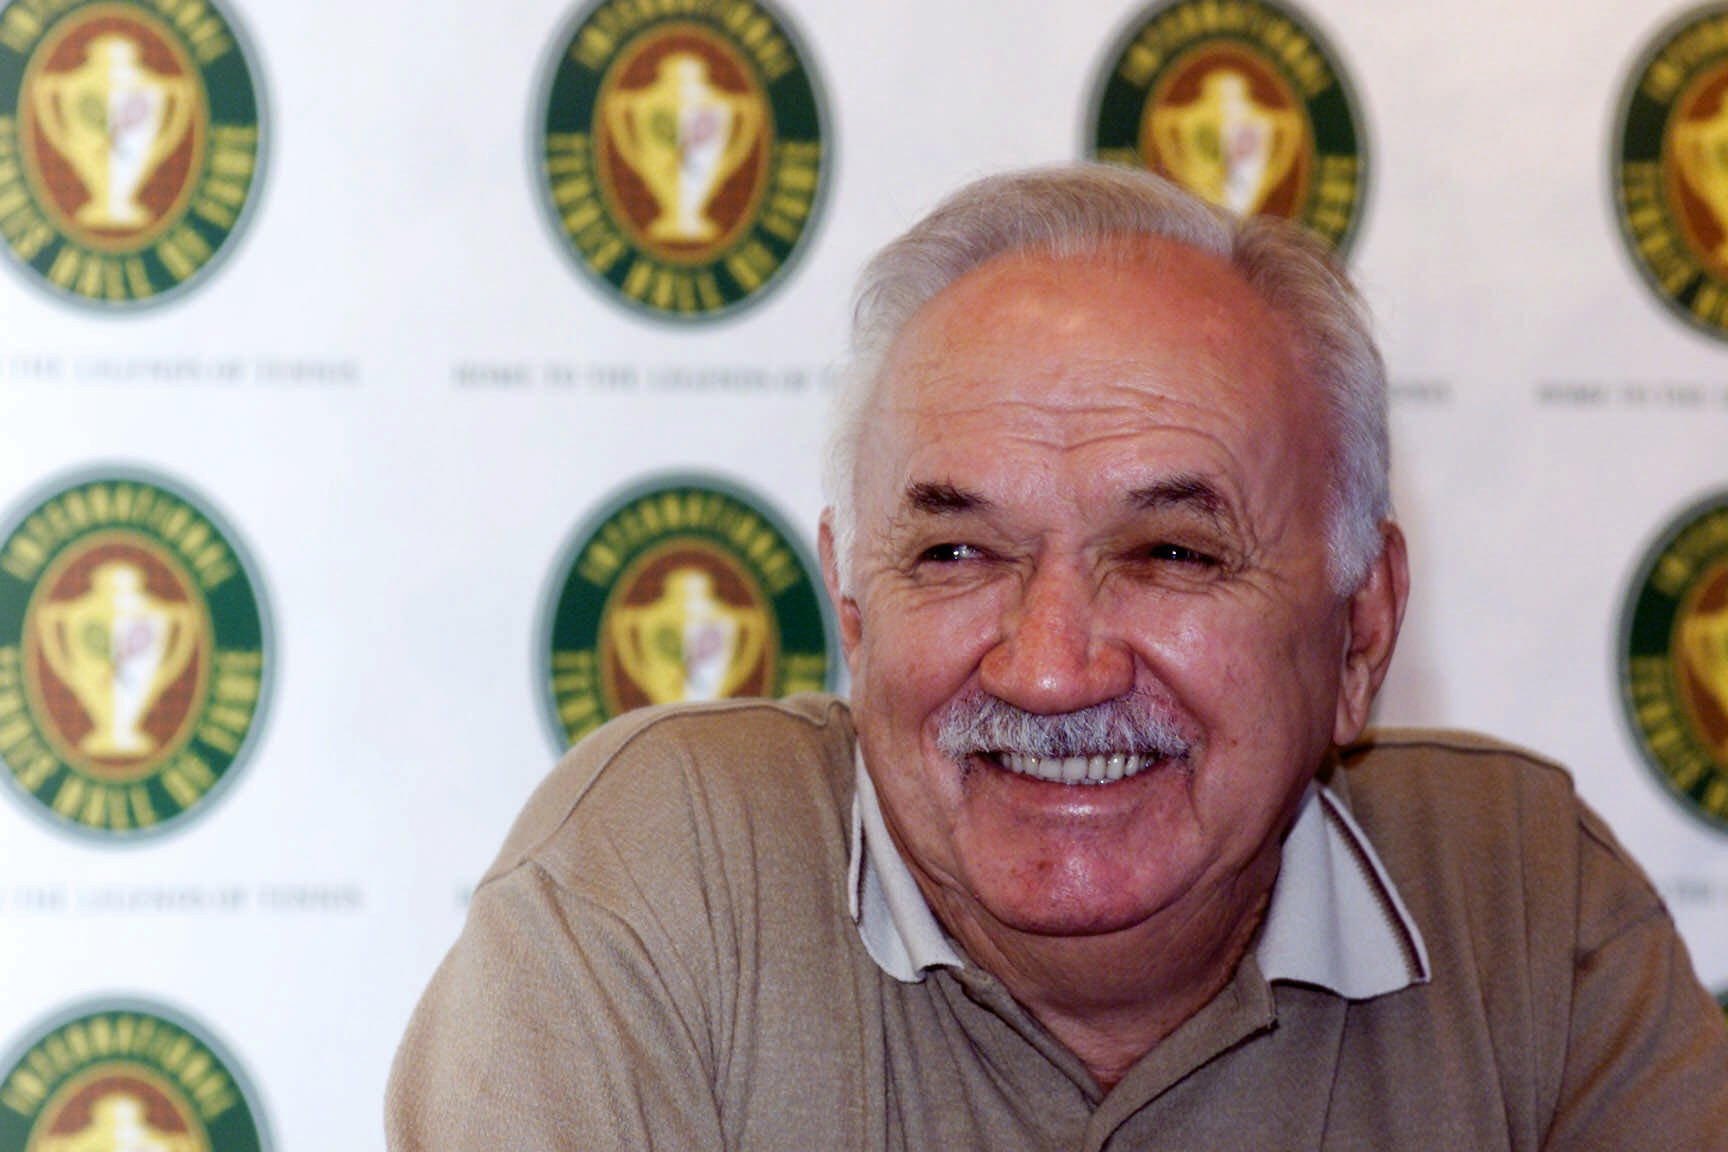 Mervyn Rose smiles during a news conference at the Newport Tennis Hall of Fame, prior to being inducted, Saturday, July 14, 2001 in Newport, R.I. (AP Photo/Victoria Arocho)